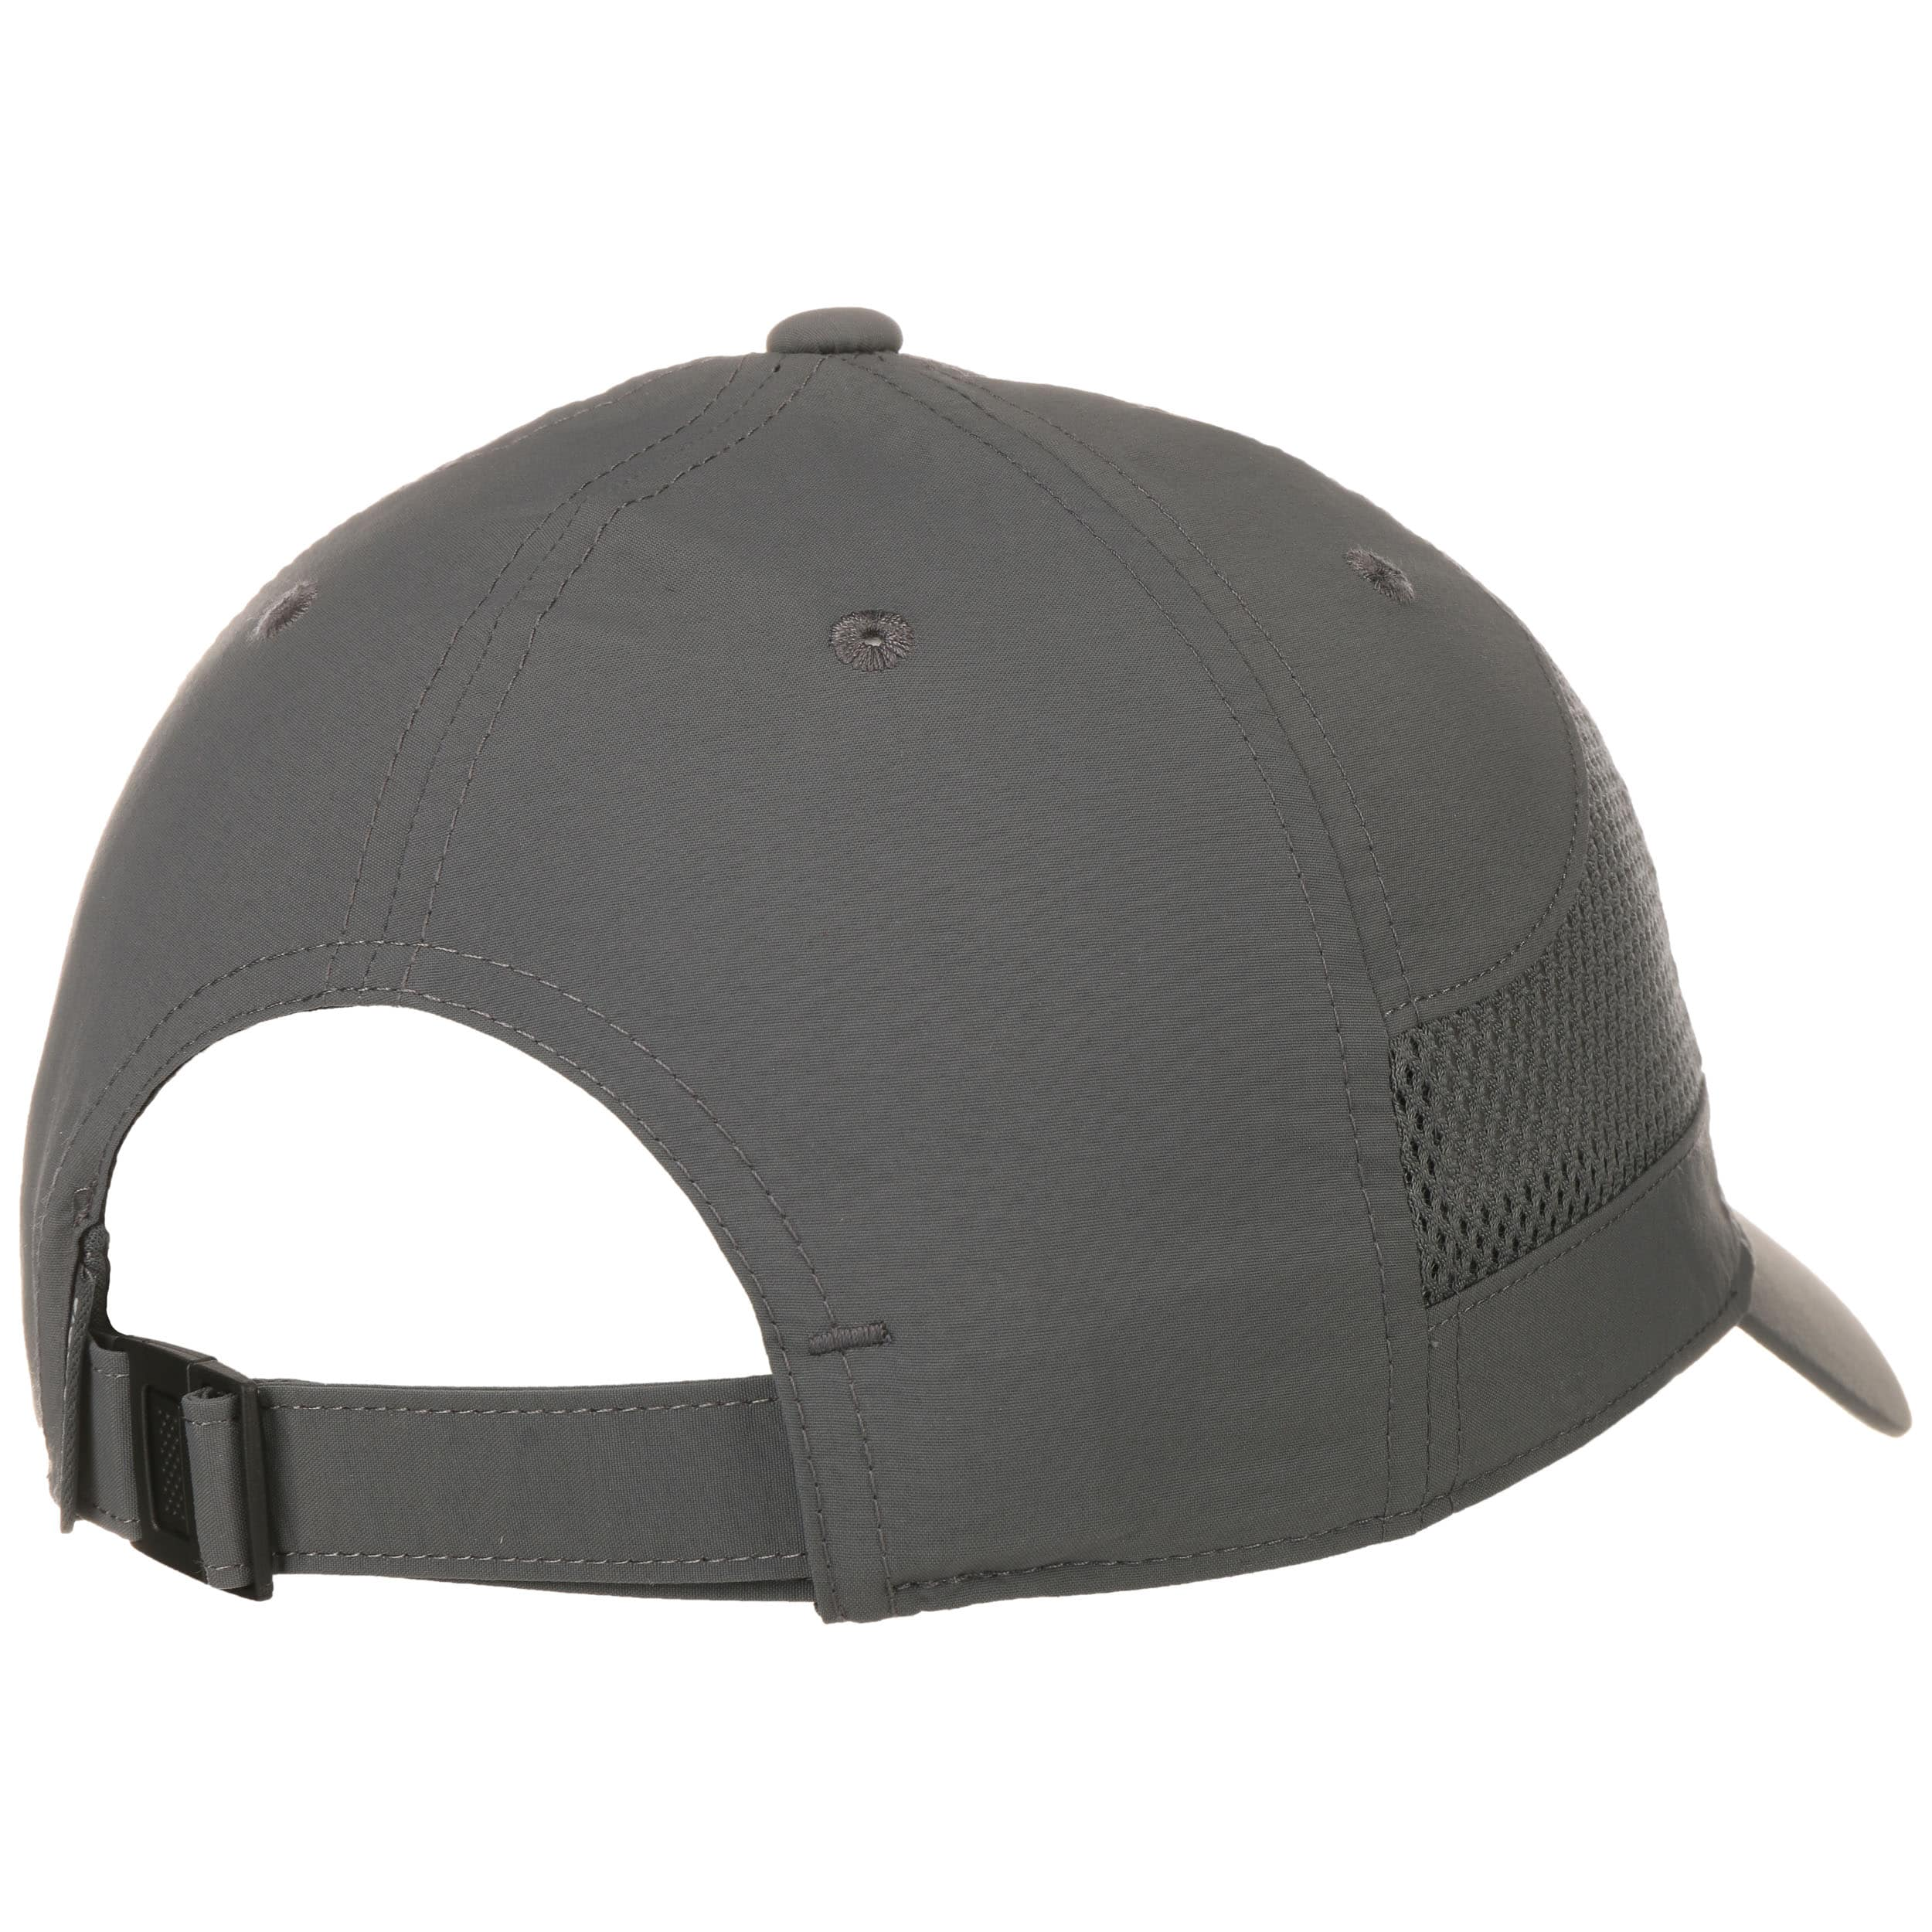 7ac3ccde7c2bd ... Tech Shade Strapback Cap by Columbia - anthracite 1 ...